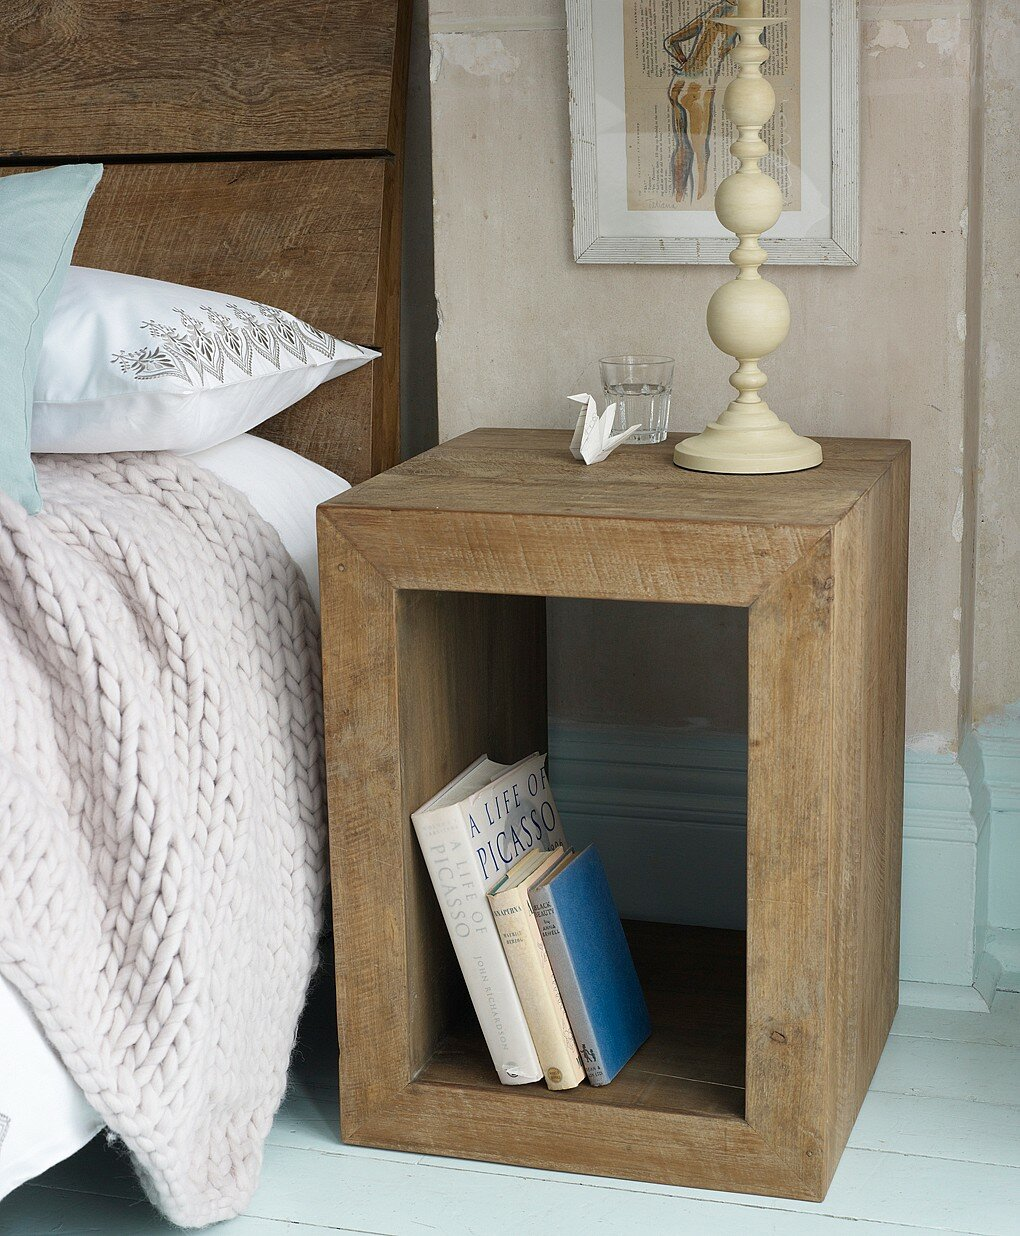 17 inspiring bedside table designs mostbeautifulthings for Bedroom table